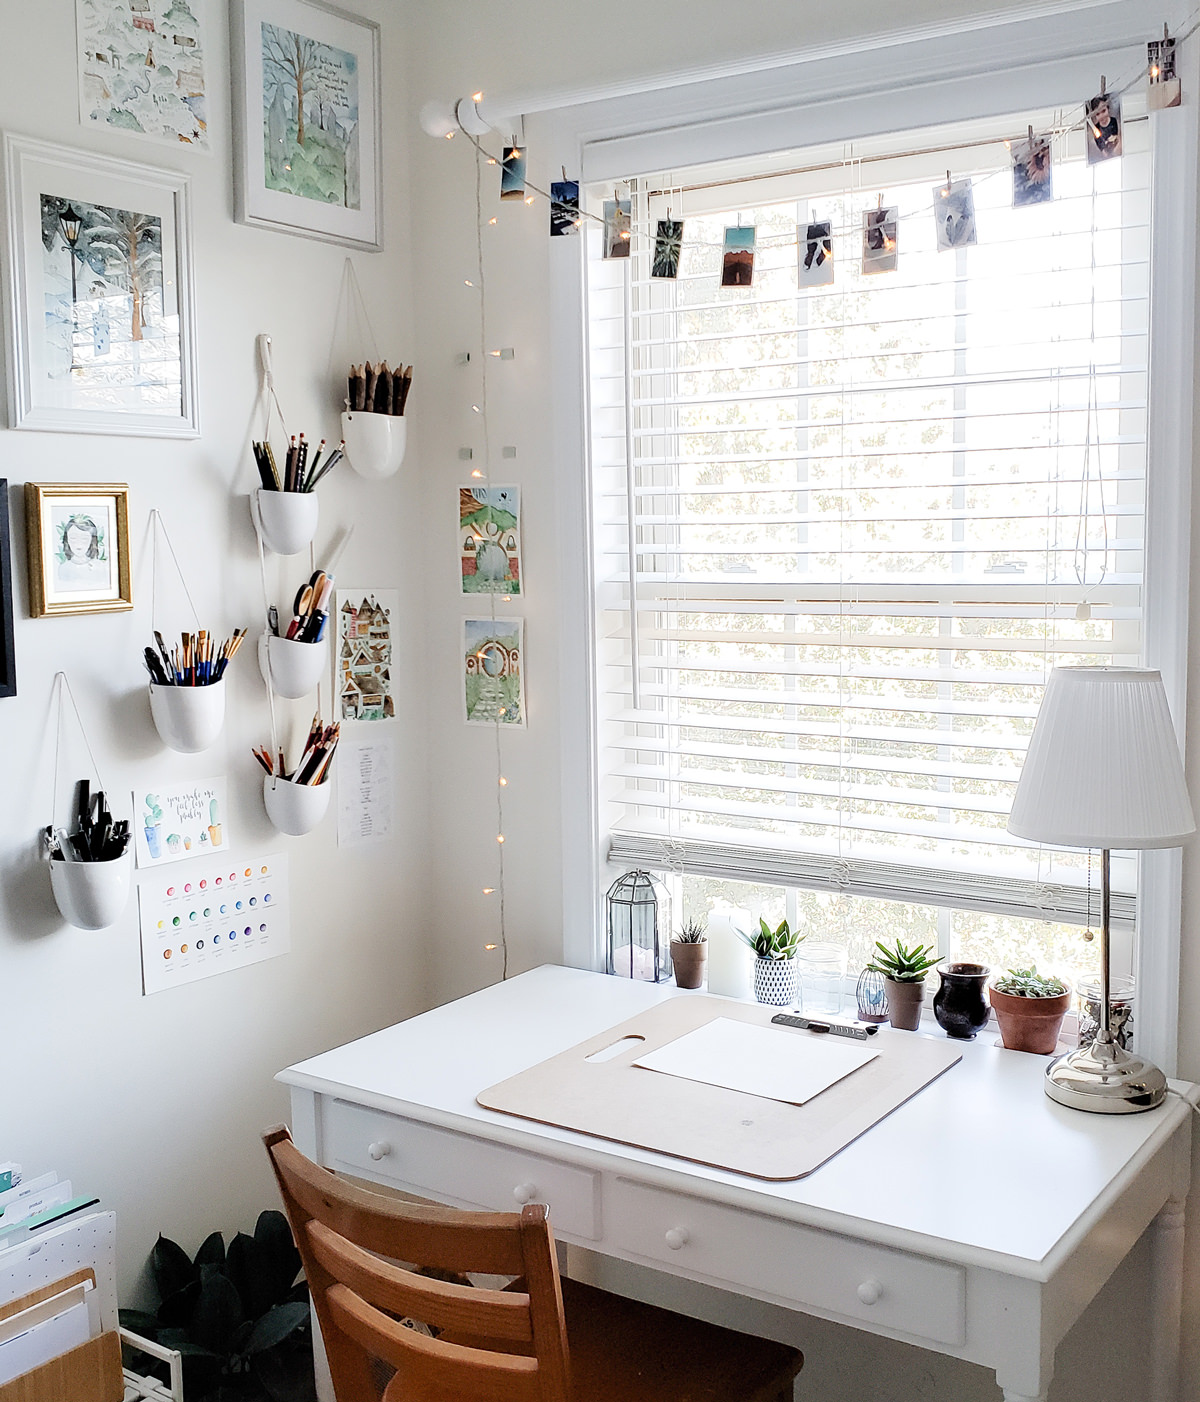 Sarah Moore DIY projects tp transform your space Studio Space